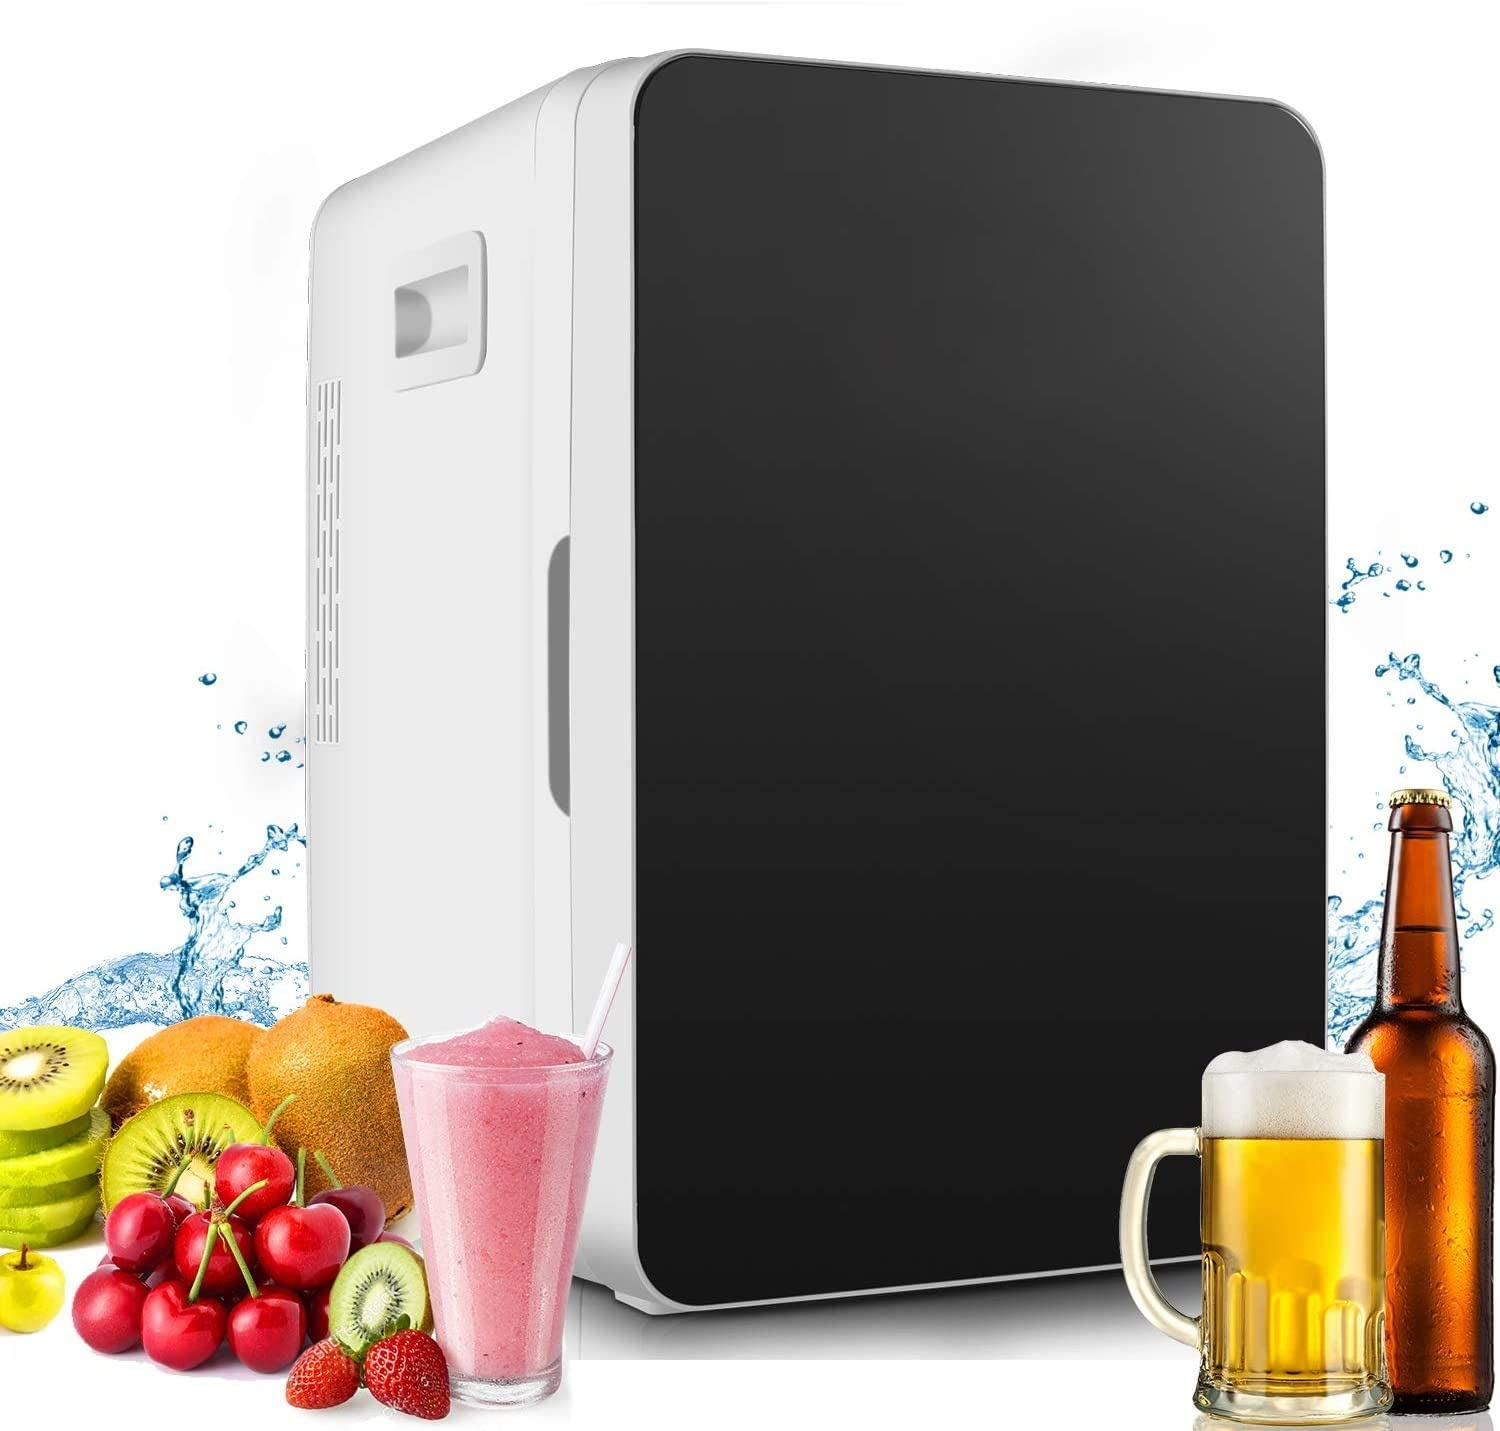 Mini Refrigerator for Bedroom Compact Fridge for Ooffice Compact Freezer Single Door US STOCK Mini Fridge 20-lifter Large Capacity